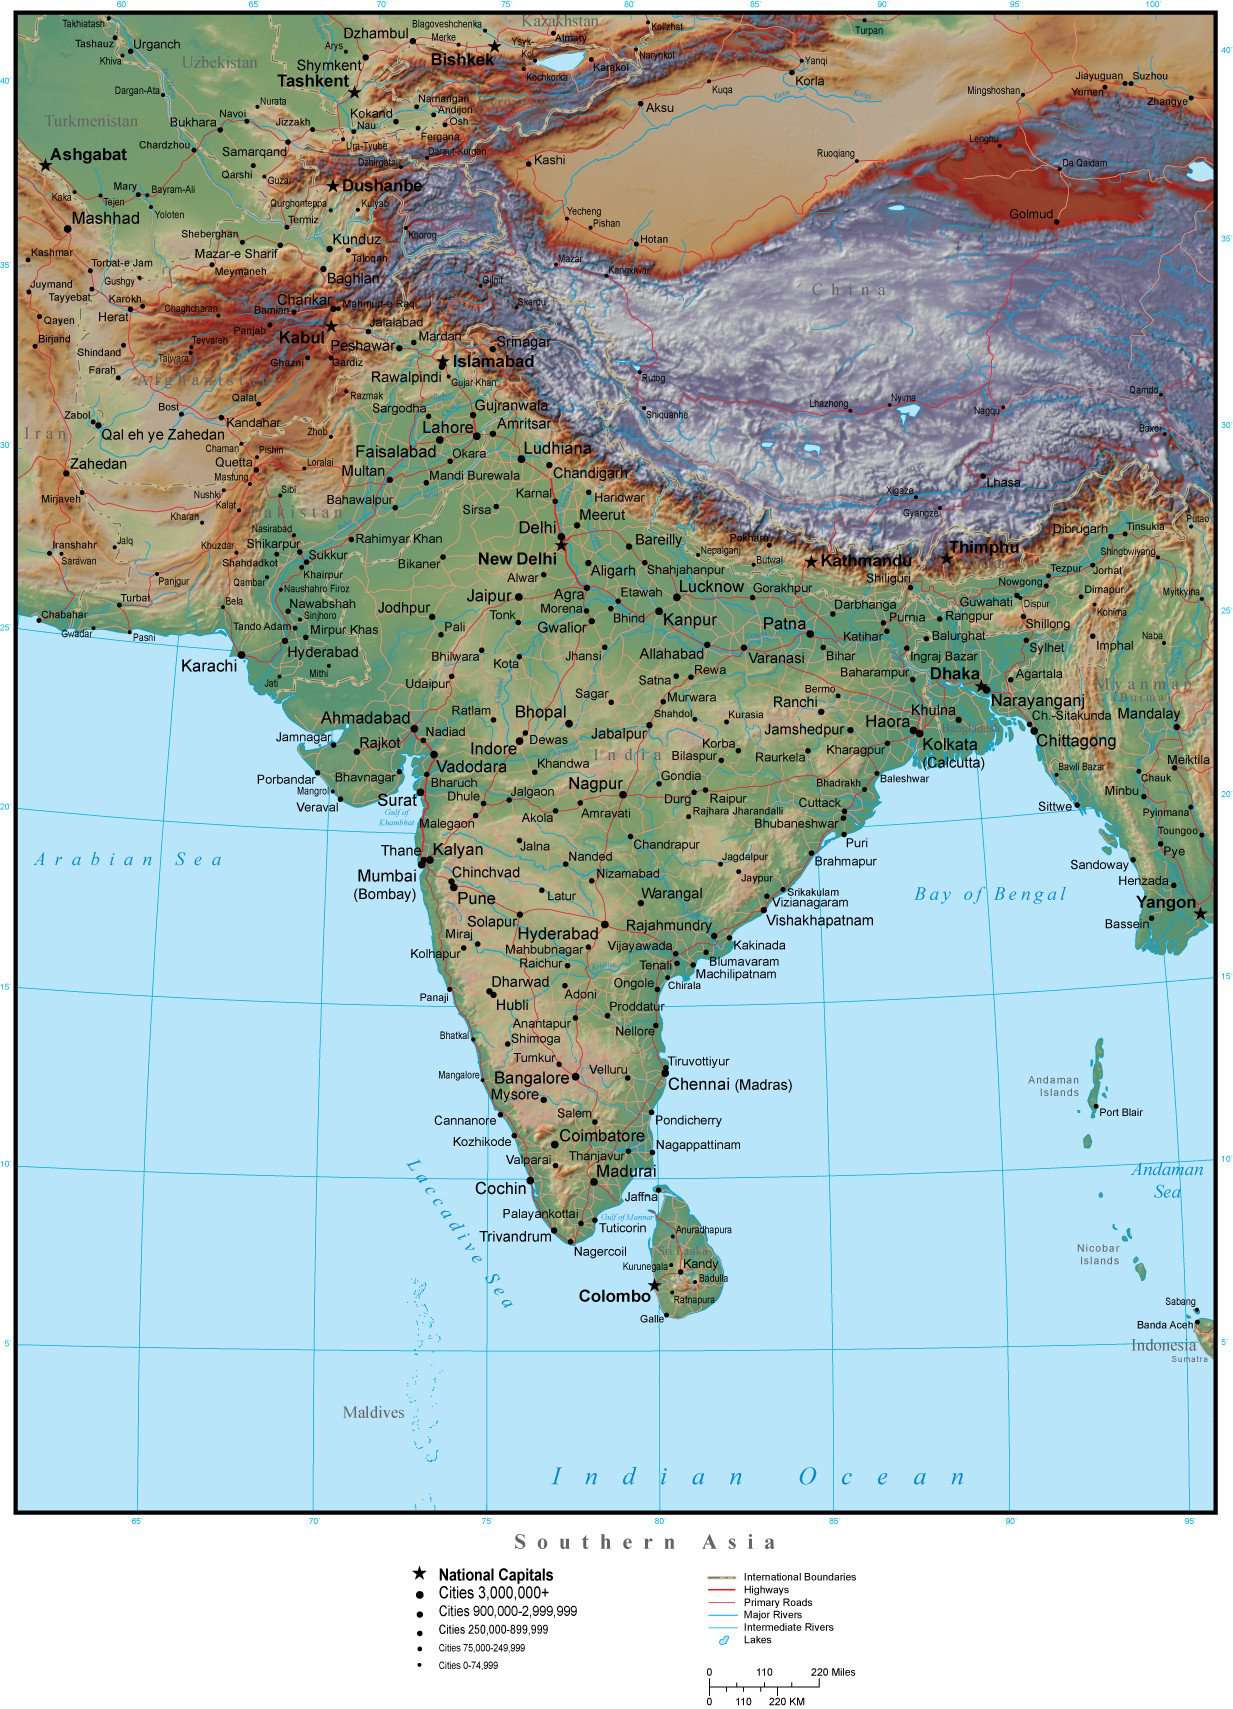 Map Of S Asia.Southern Asia Map Plus Terrain With Countries Capitals Cities Roads And Water Features